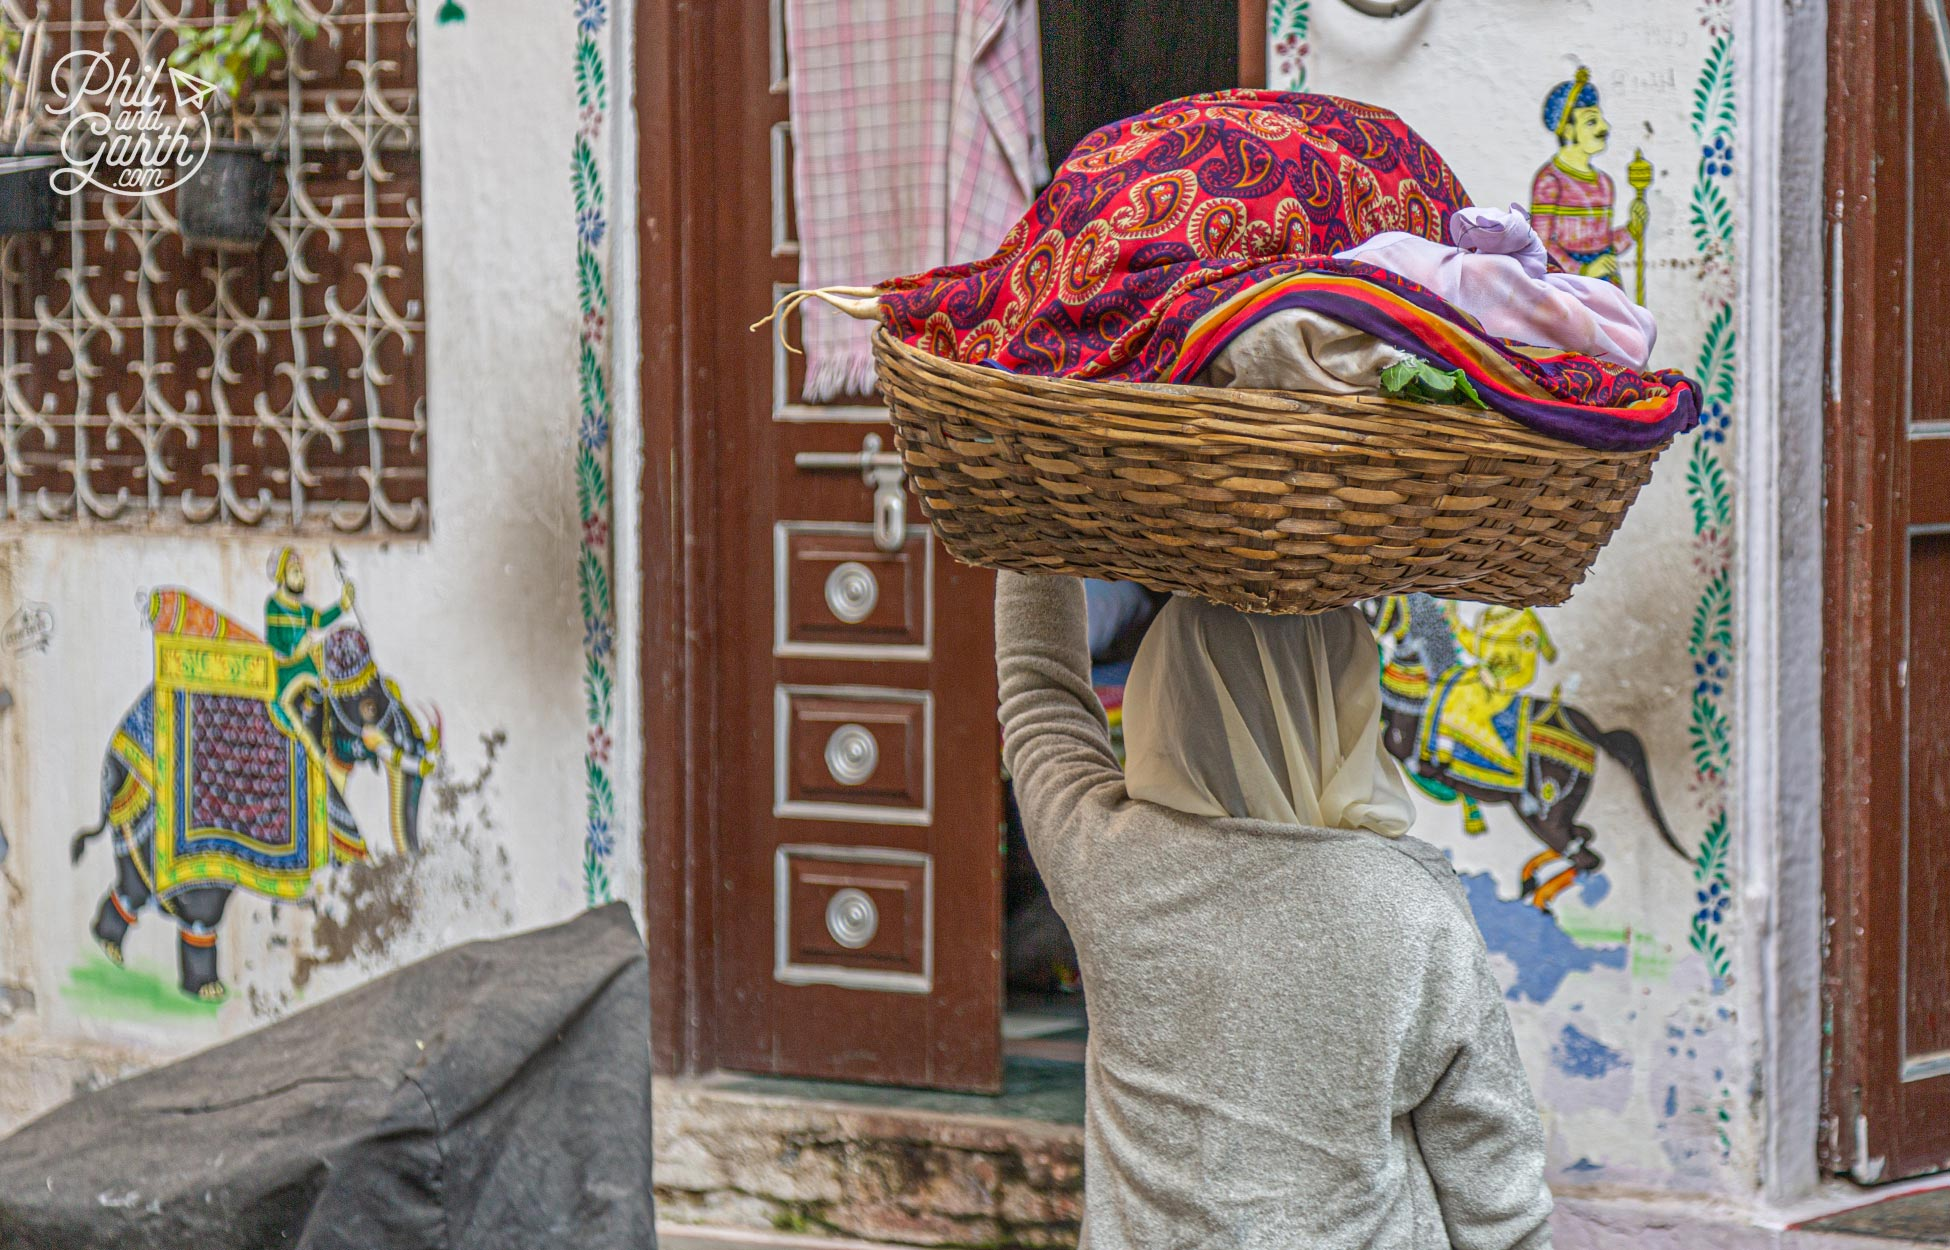 A lady transports her laundry